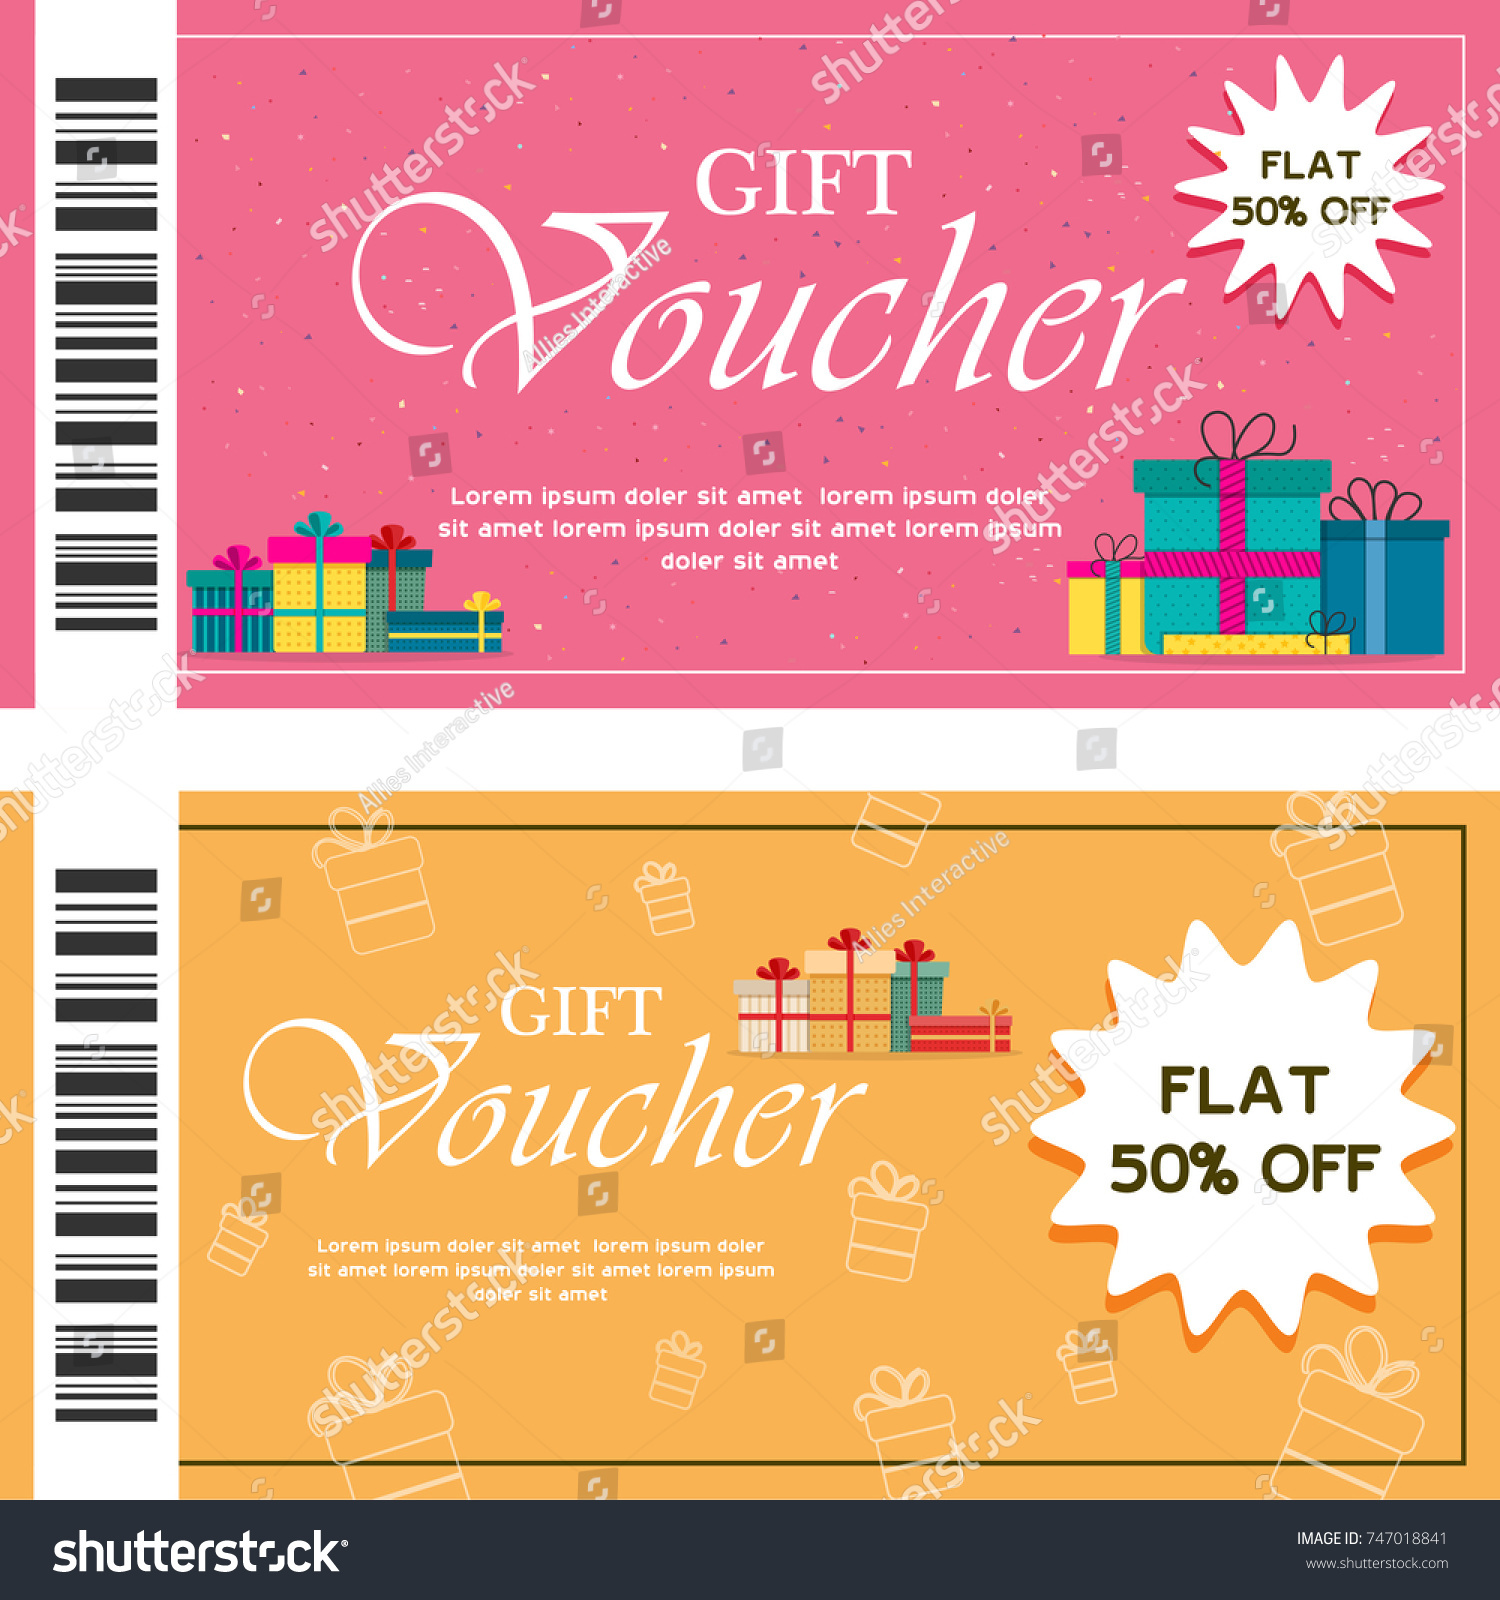 Business Voucher Template  Business Voucher Template